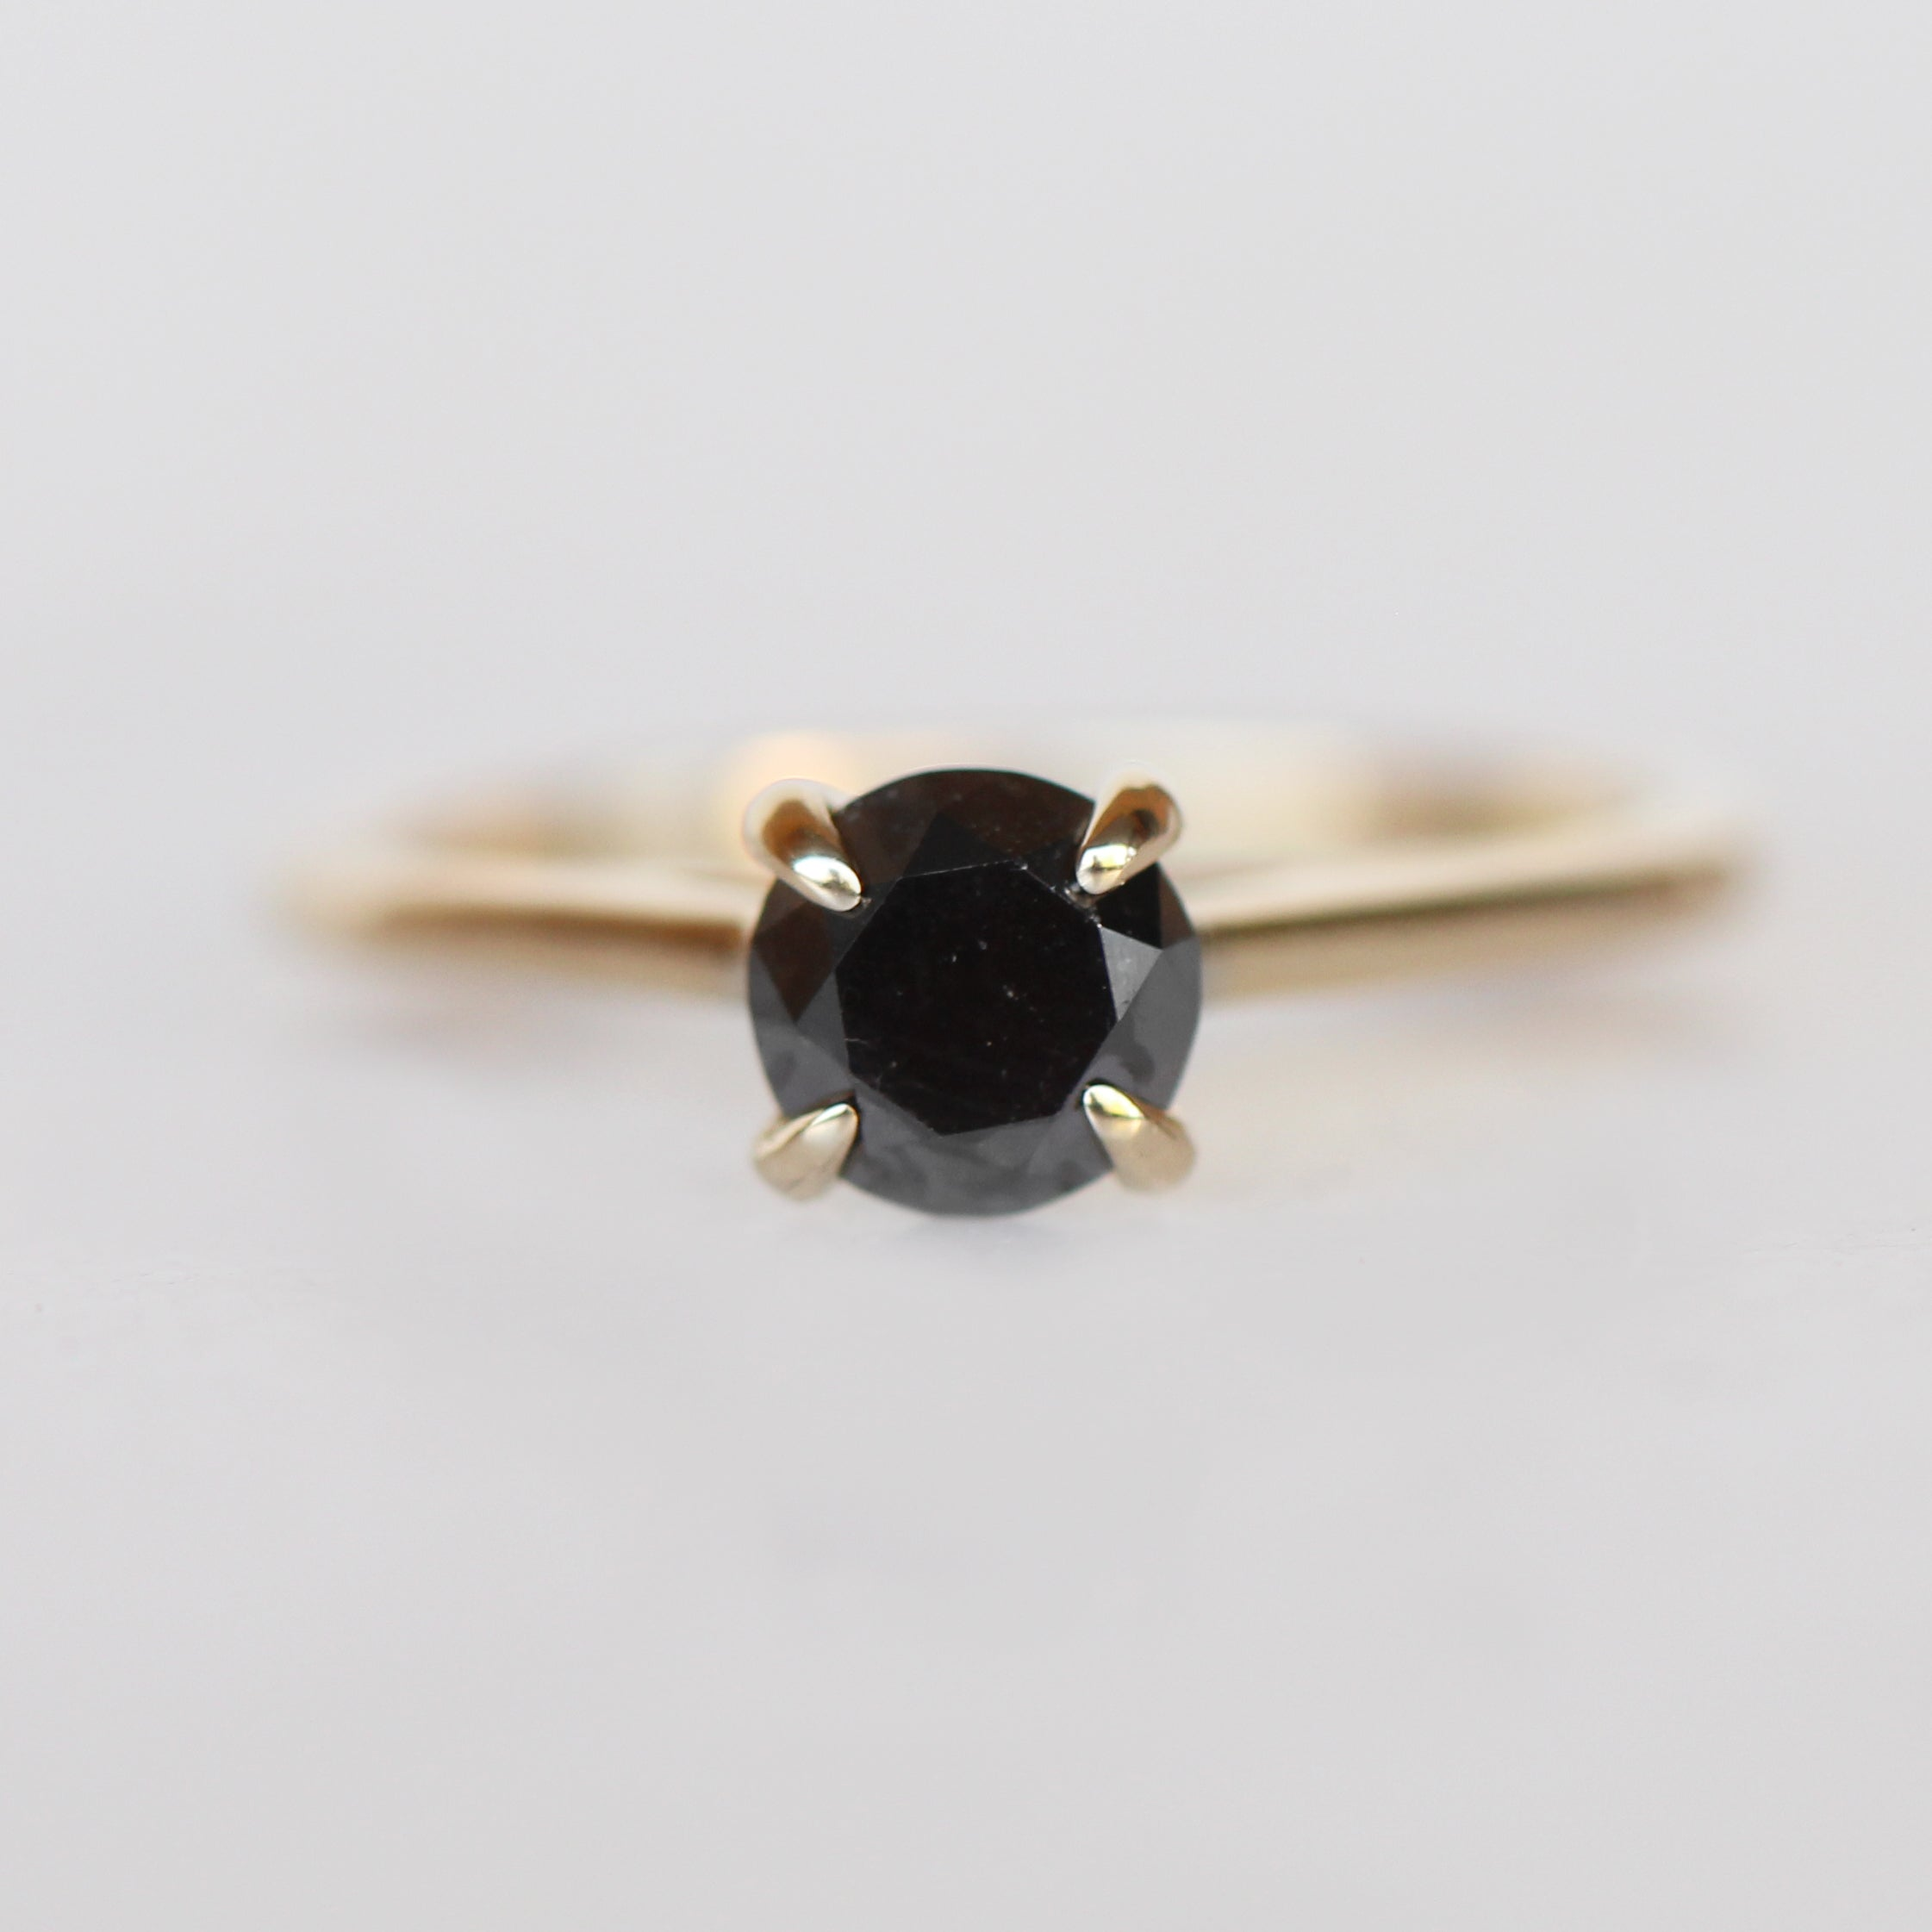 Elle - 1 carat Black diamond ring - Your choice of gold - Celestial Diamonds ® by Midwinter Co.